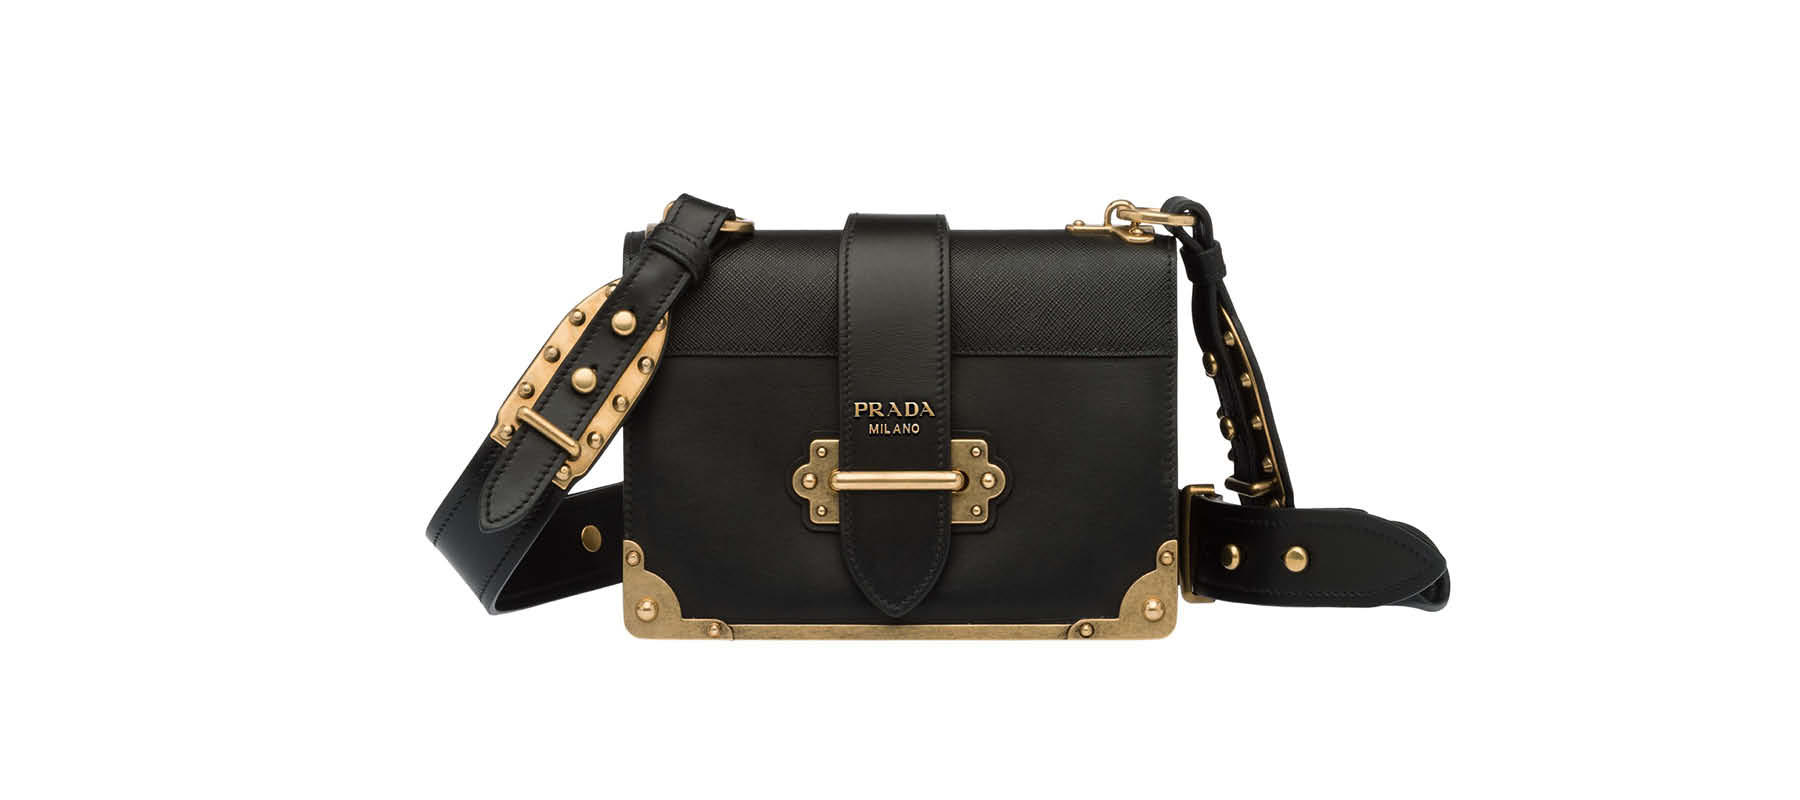 Prada Cahier bag dupes on Amazon. Prada bag dupes. Prada Galleria dupes.